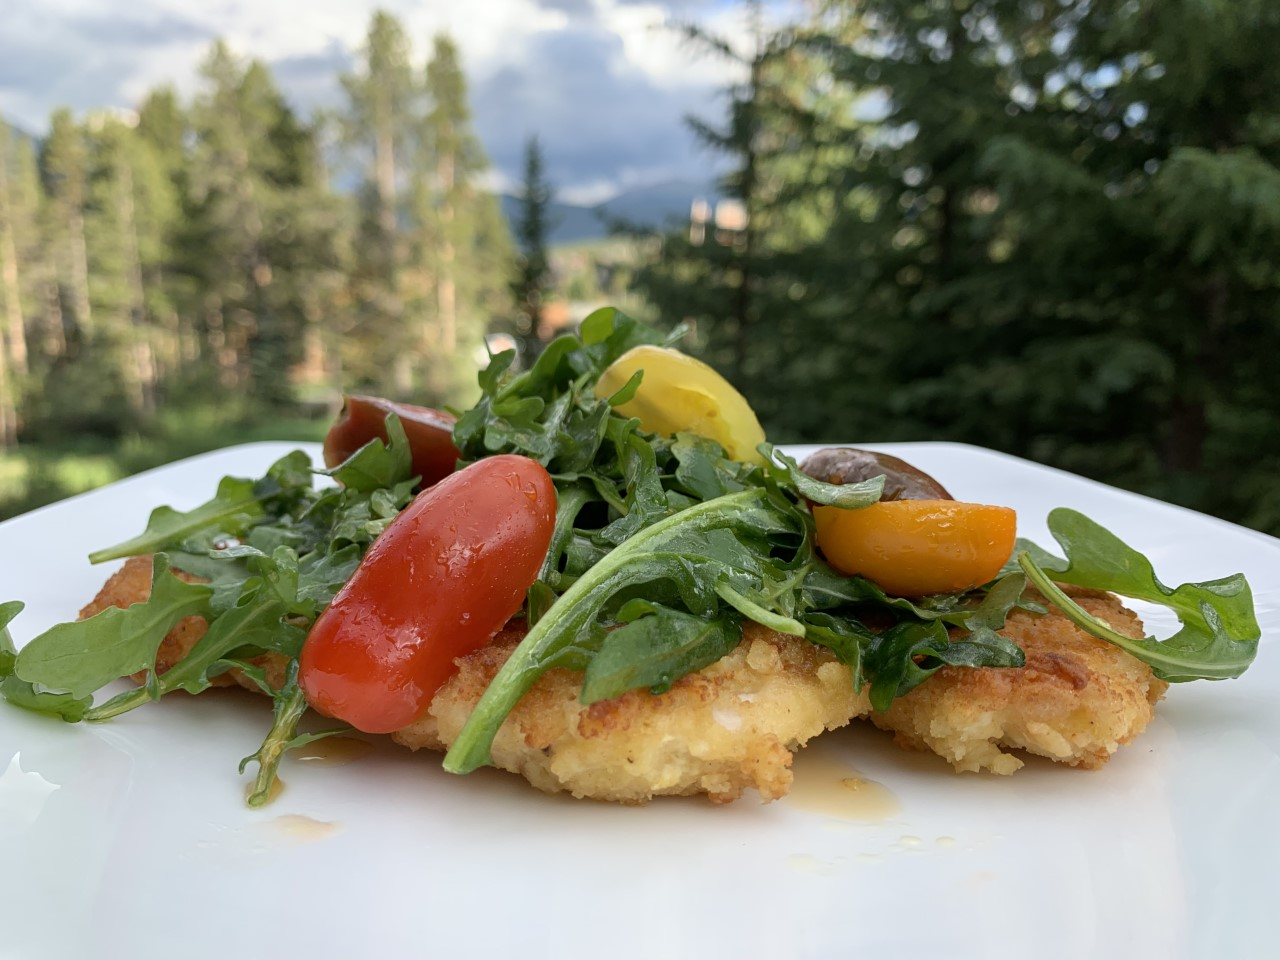 Chicken Milanese is a thinly coated chicken breast sauteed then topped with an arugula and tomato salad